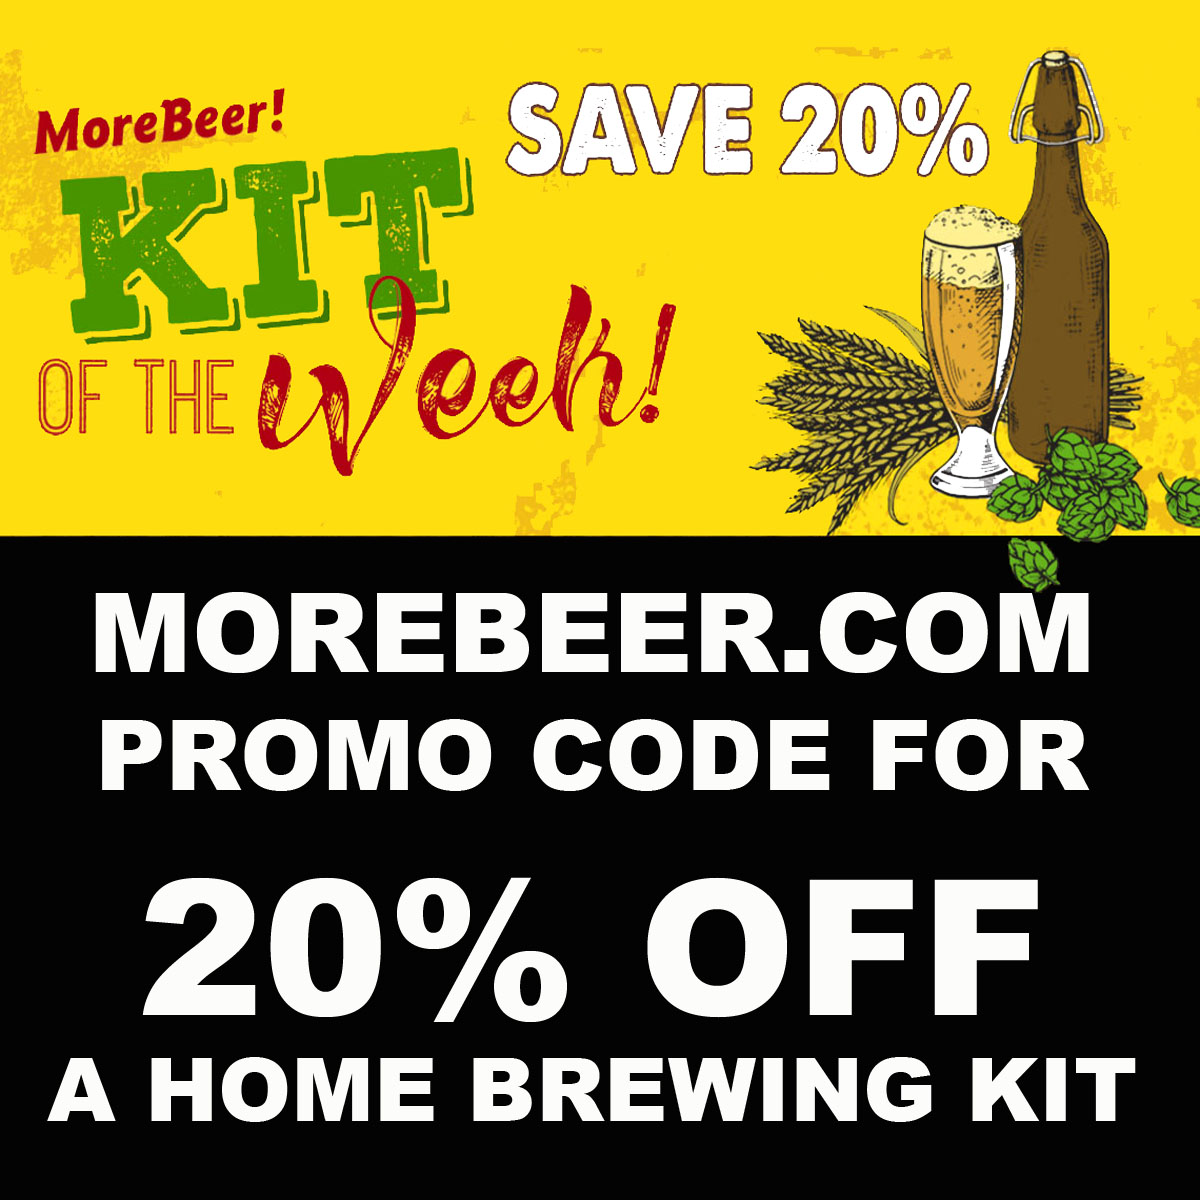 Save 20% On MoreBeer.com 5 Star Rated Extra Special Bitter Homebrewing Beer Kit Either All Grain or Extract with this More Beer Promo Code. Coupon Code